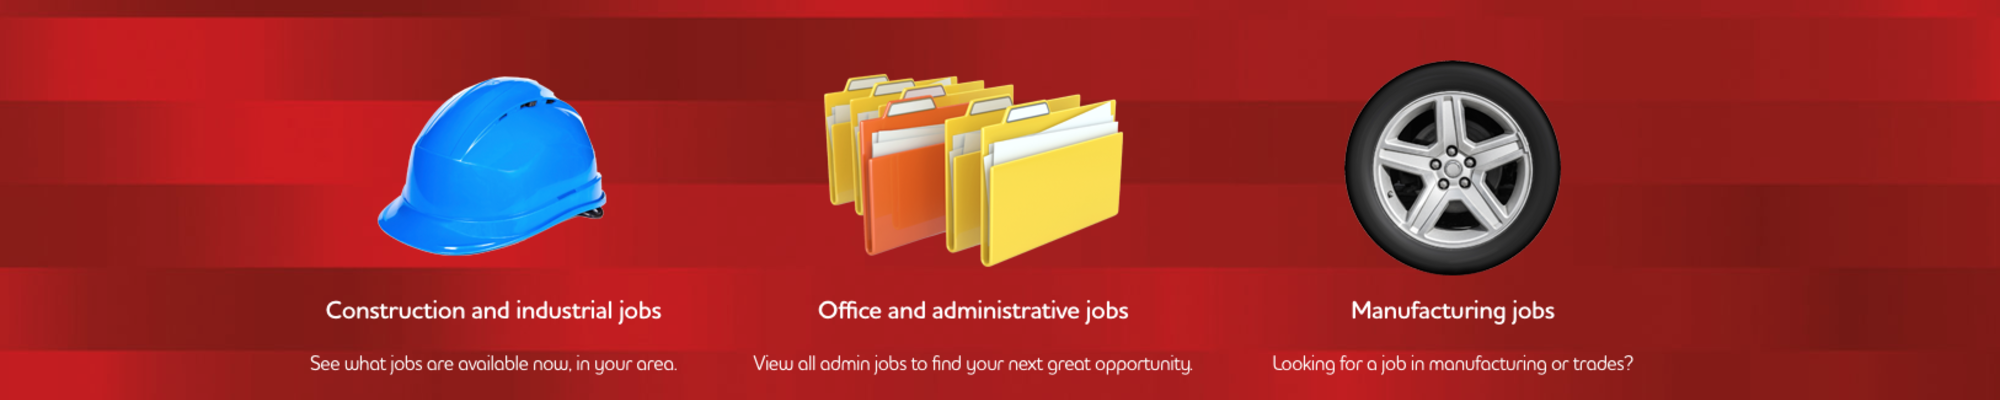 Adecco, recruitment agency, work, jobs, staff, staffing